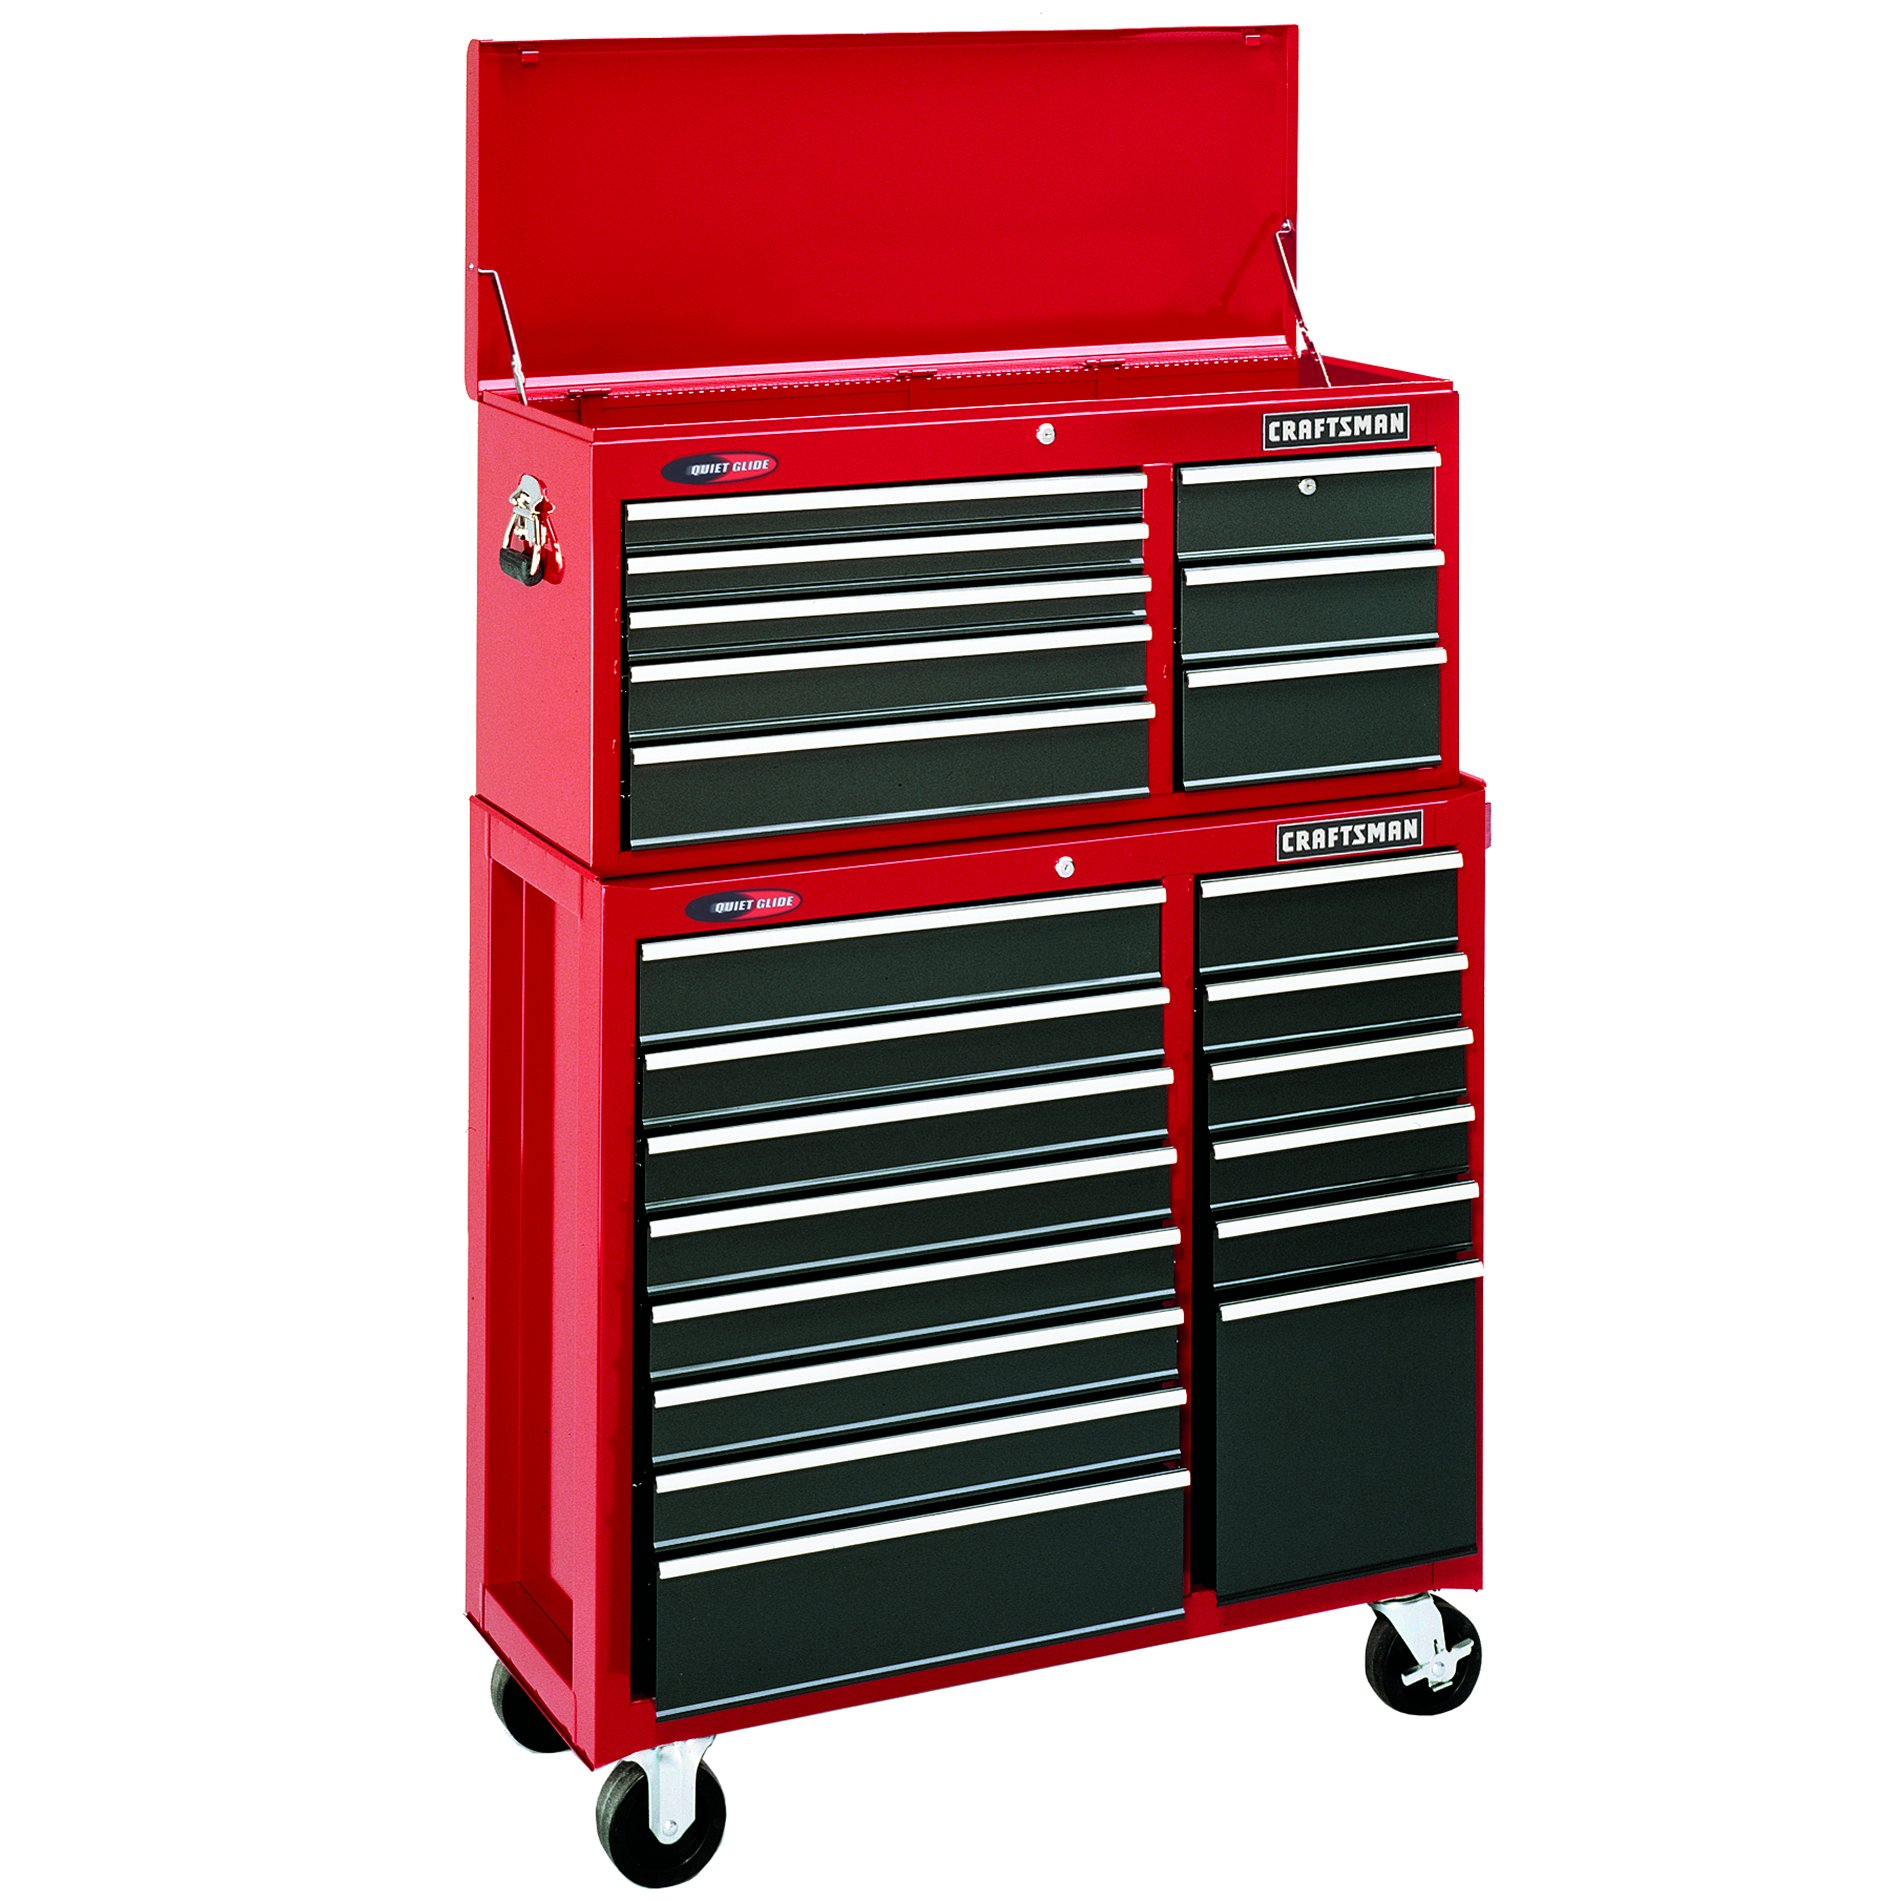 Craftsman-22 Drawer, 40 in. Combo - Red - Each Item Sold Separately